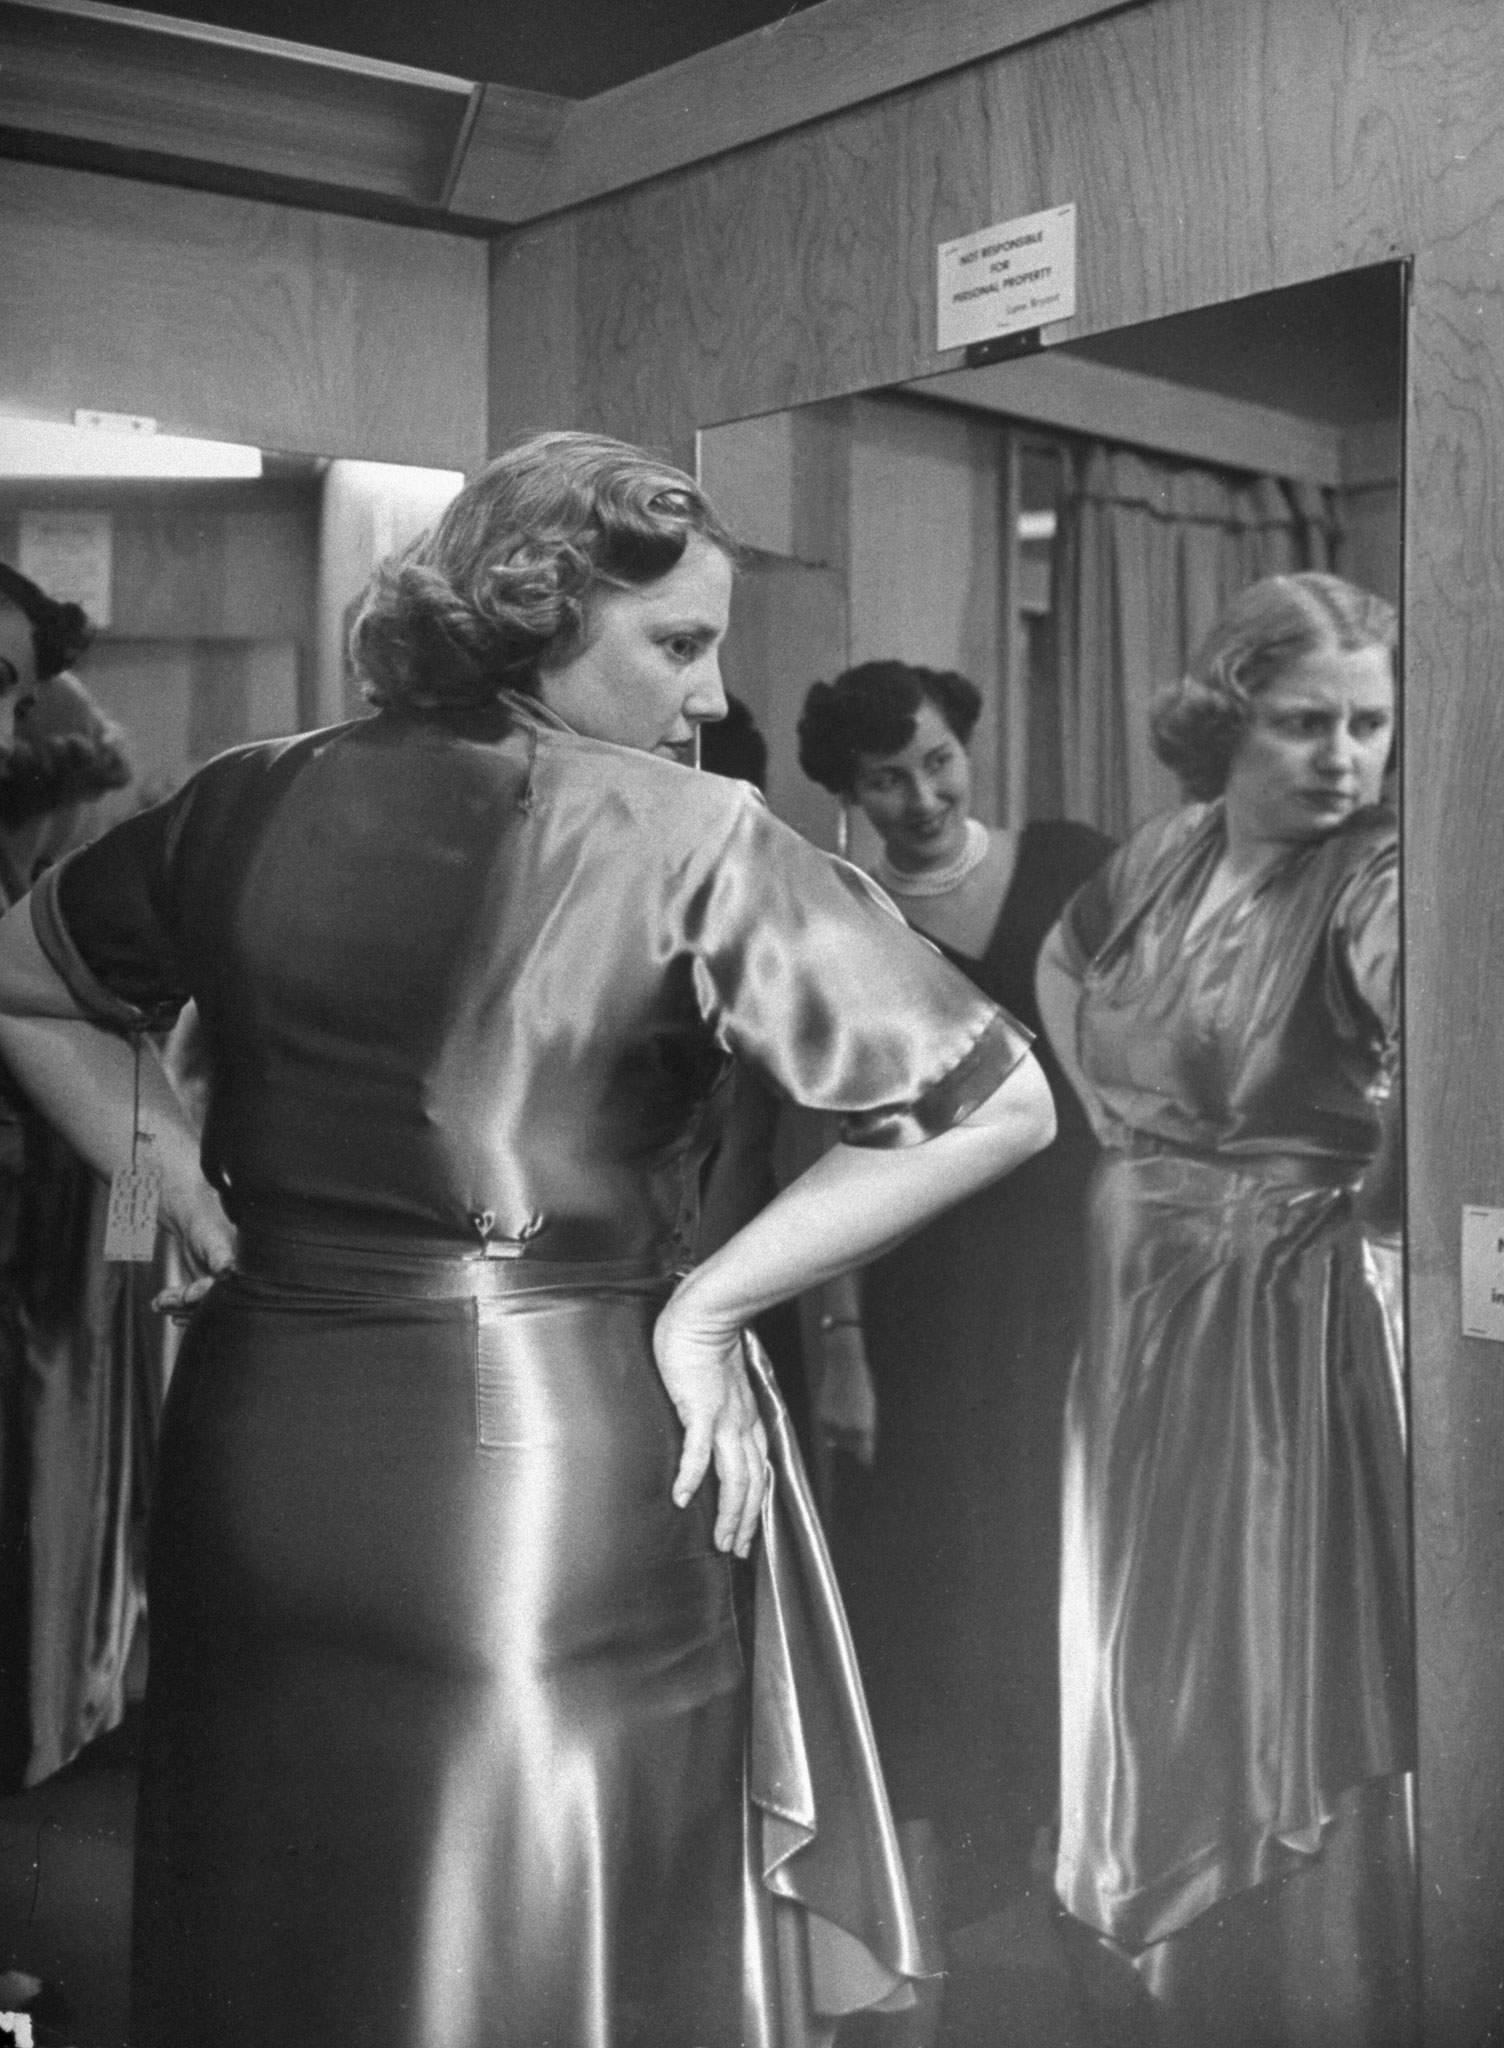 <b>Caption from LIFE.</b> Embarrassed at shop because she wears a size 40, Dorothy tries on new dress. A friend encouragingly points out that dieting has reduced waistline by two sizes